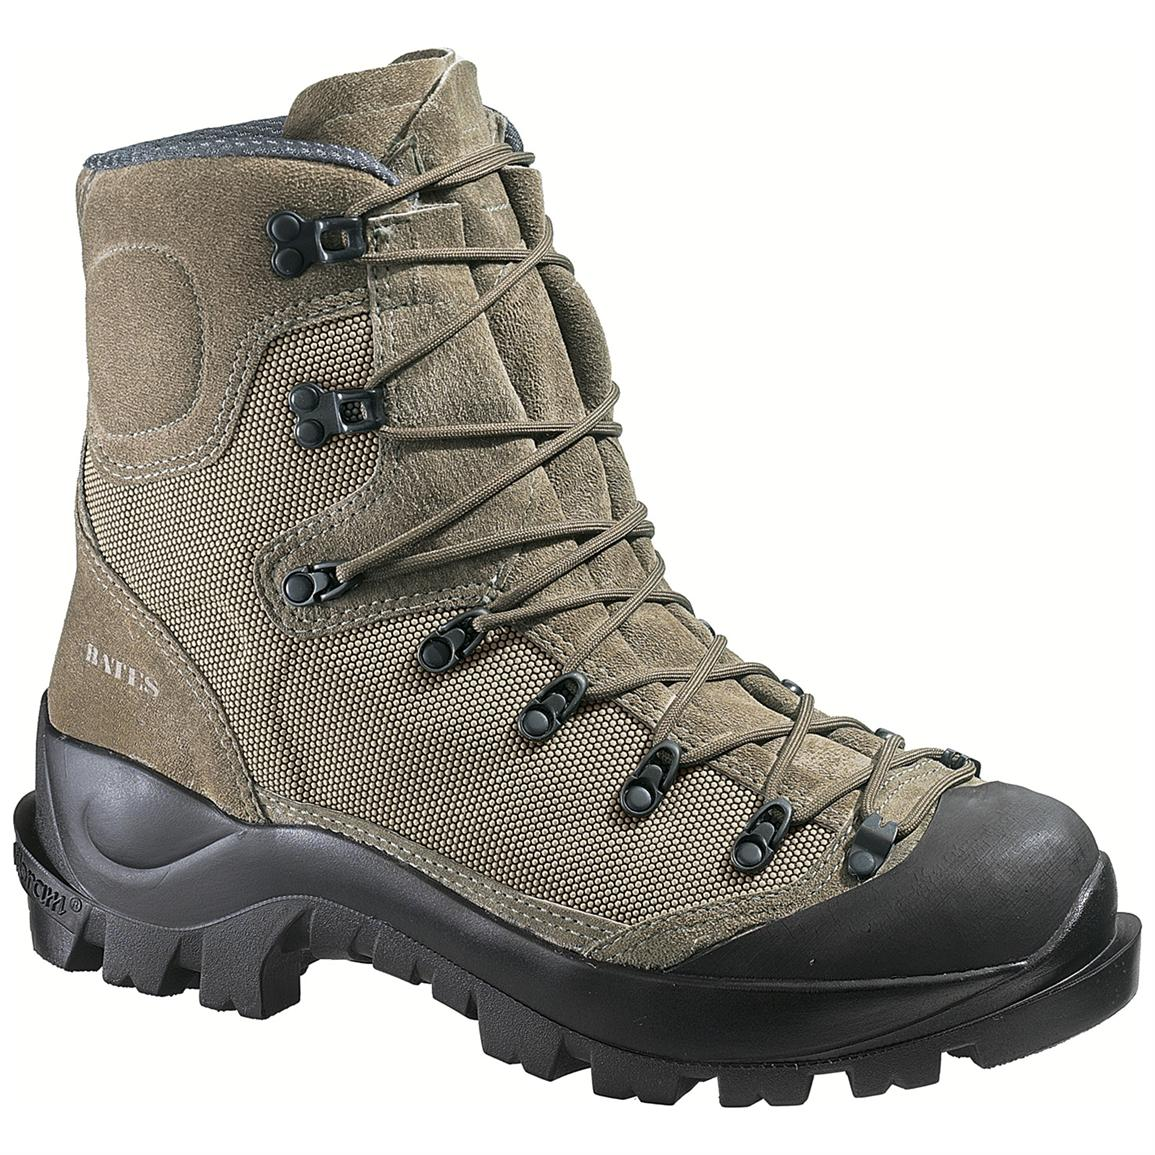 "Bates Men's Tora Bora 9"" Waterproof Insulated Alpine Combat Boots, 200 Gram, Sage"